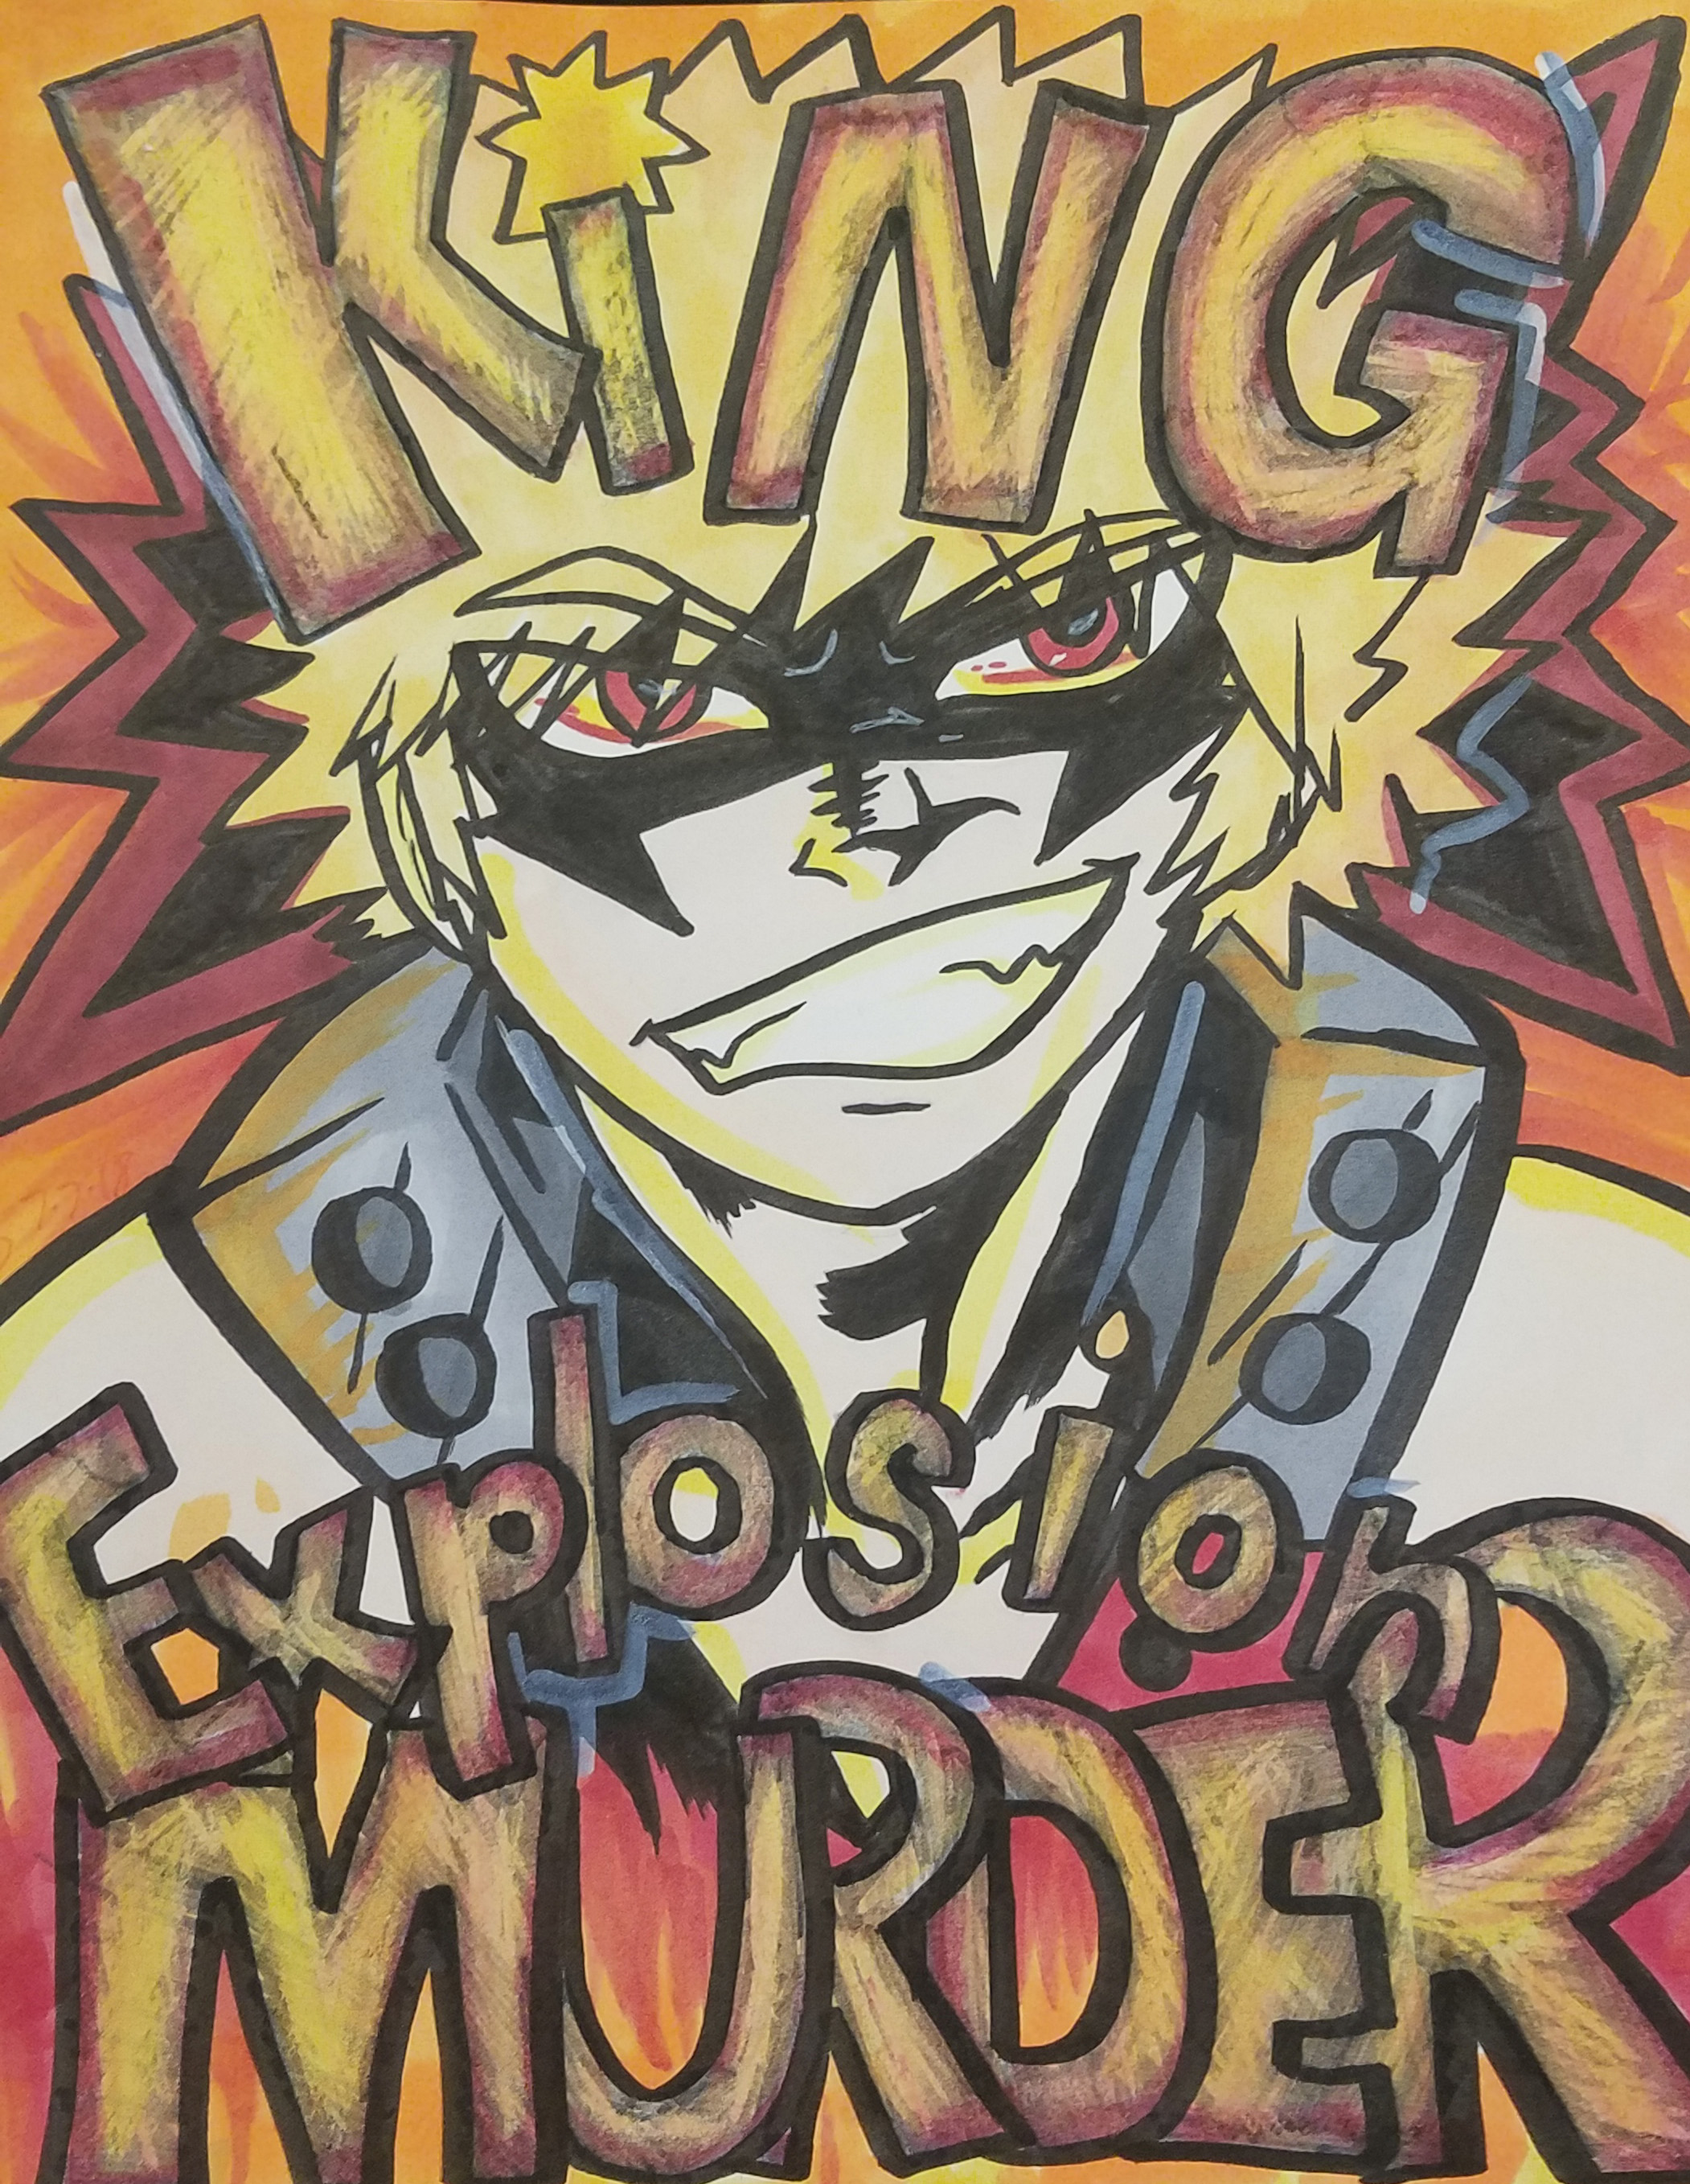 King Explosion Murder!  - I was working on the sketch when a cosplayer came up to me - he wanted to buy it!